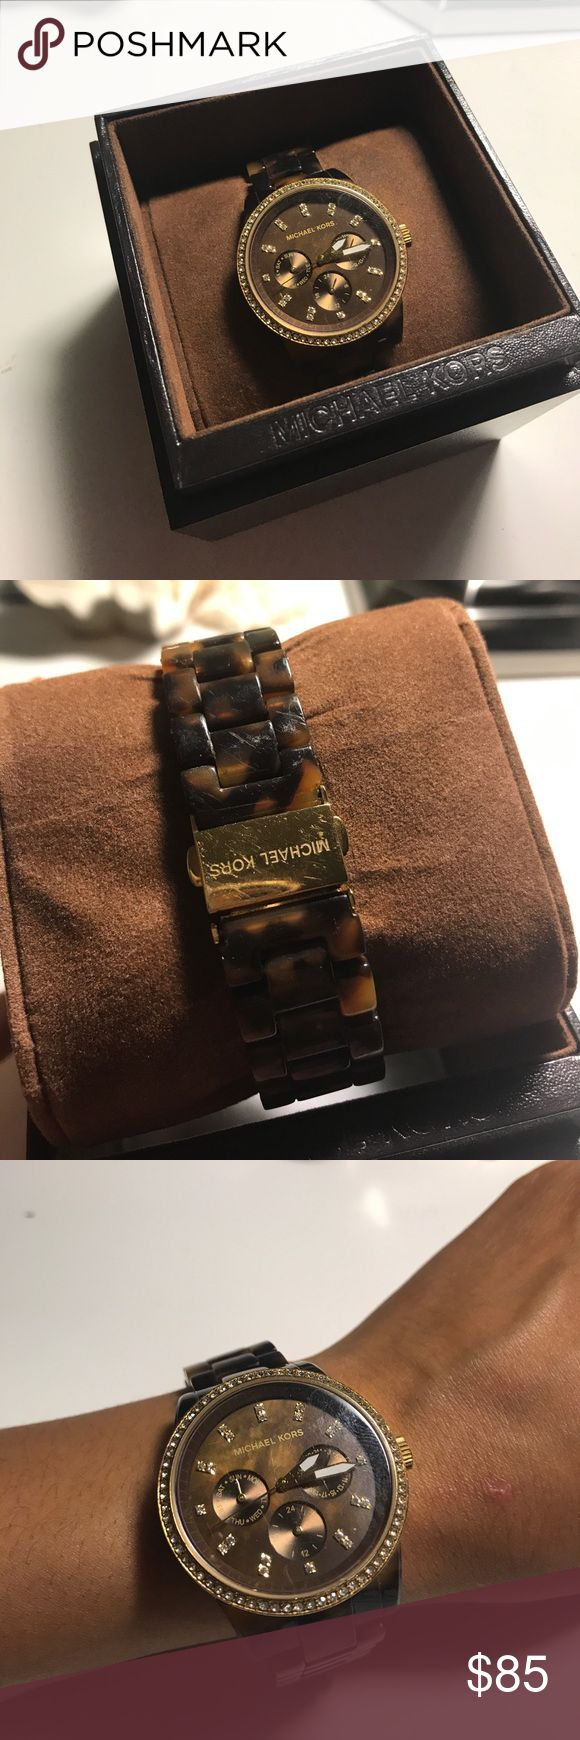 Michael Kors Tortoise Watch This lightly used tortoise watch is a great watch for the fall! Watch does. It have a battery but comes in great working condition. Comes with box and extra links. MICHAEL Michael Kors Accessories Watches